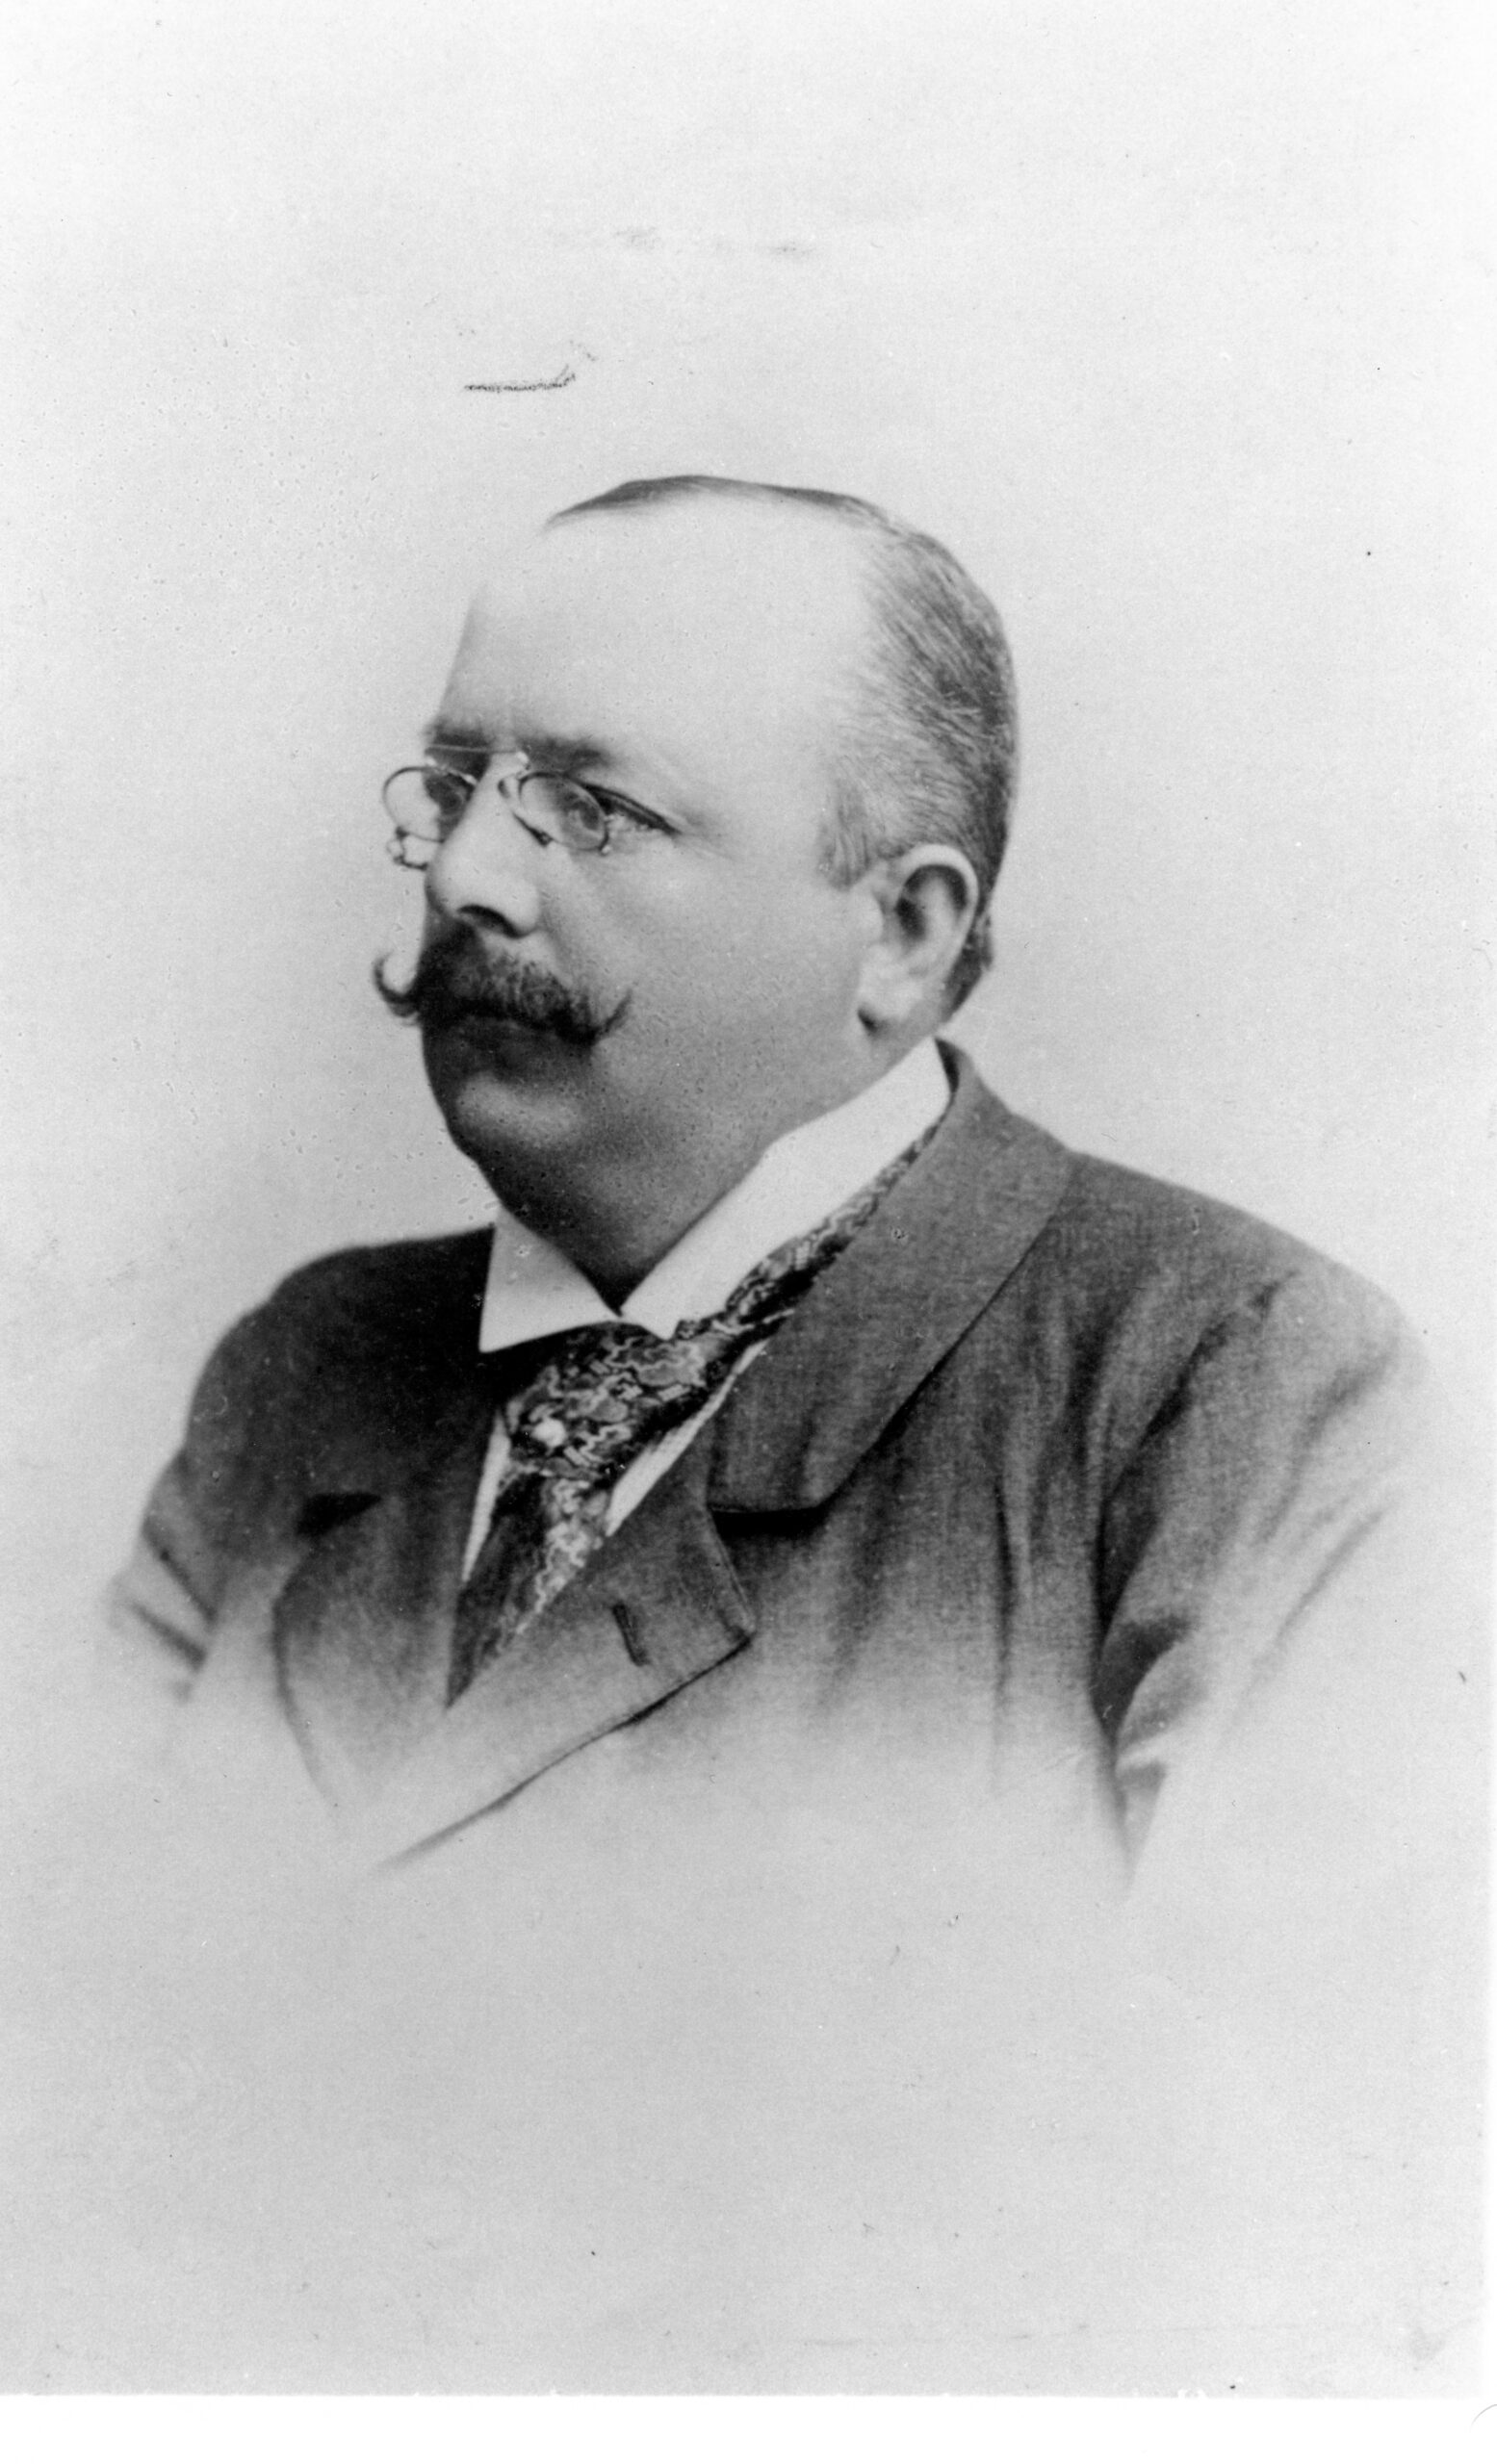 Edouard Heuer (1888), the founder of the company in 1861